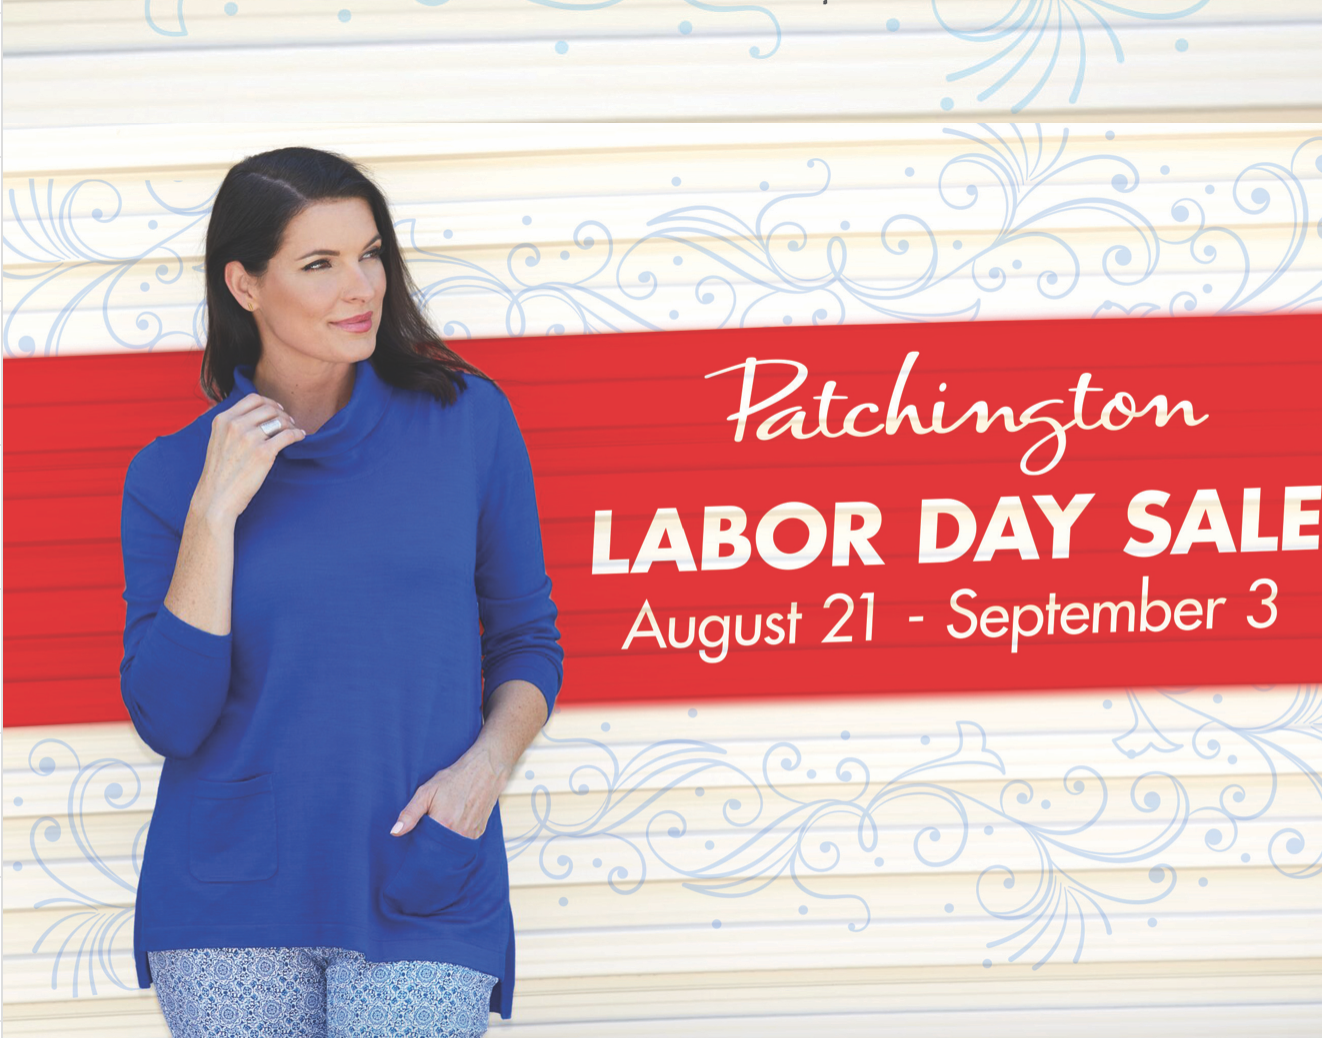 Patchington Labor Day Sale, The Village Shops on Venetian Bay